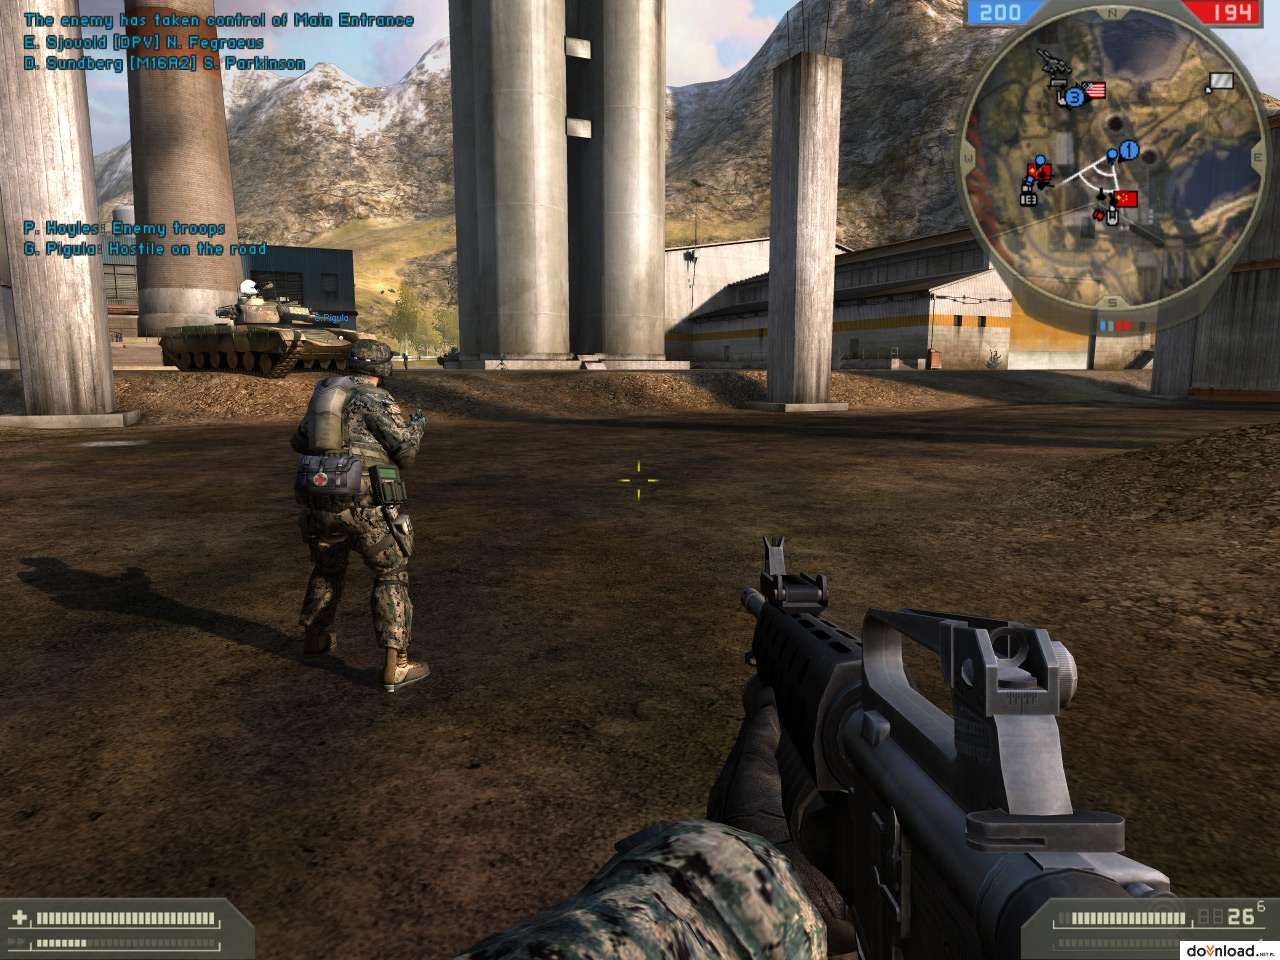 Battlefield 2 Pc Game Free Download Full Version Jb Blog